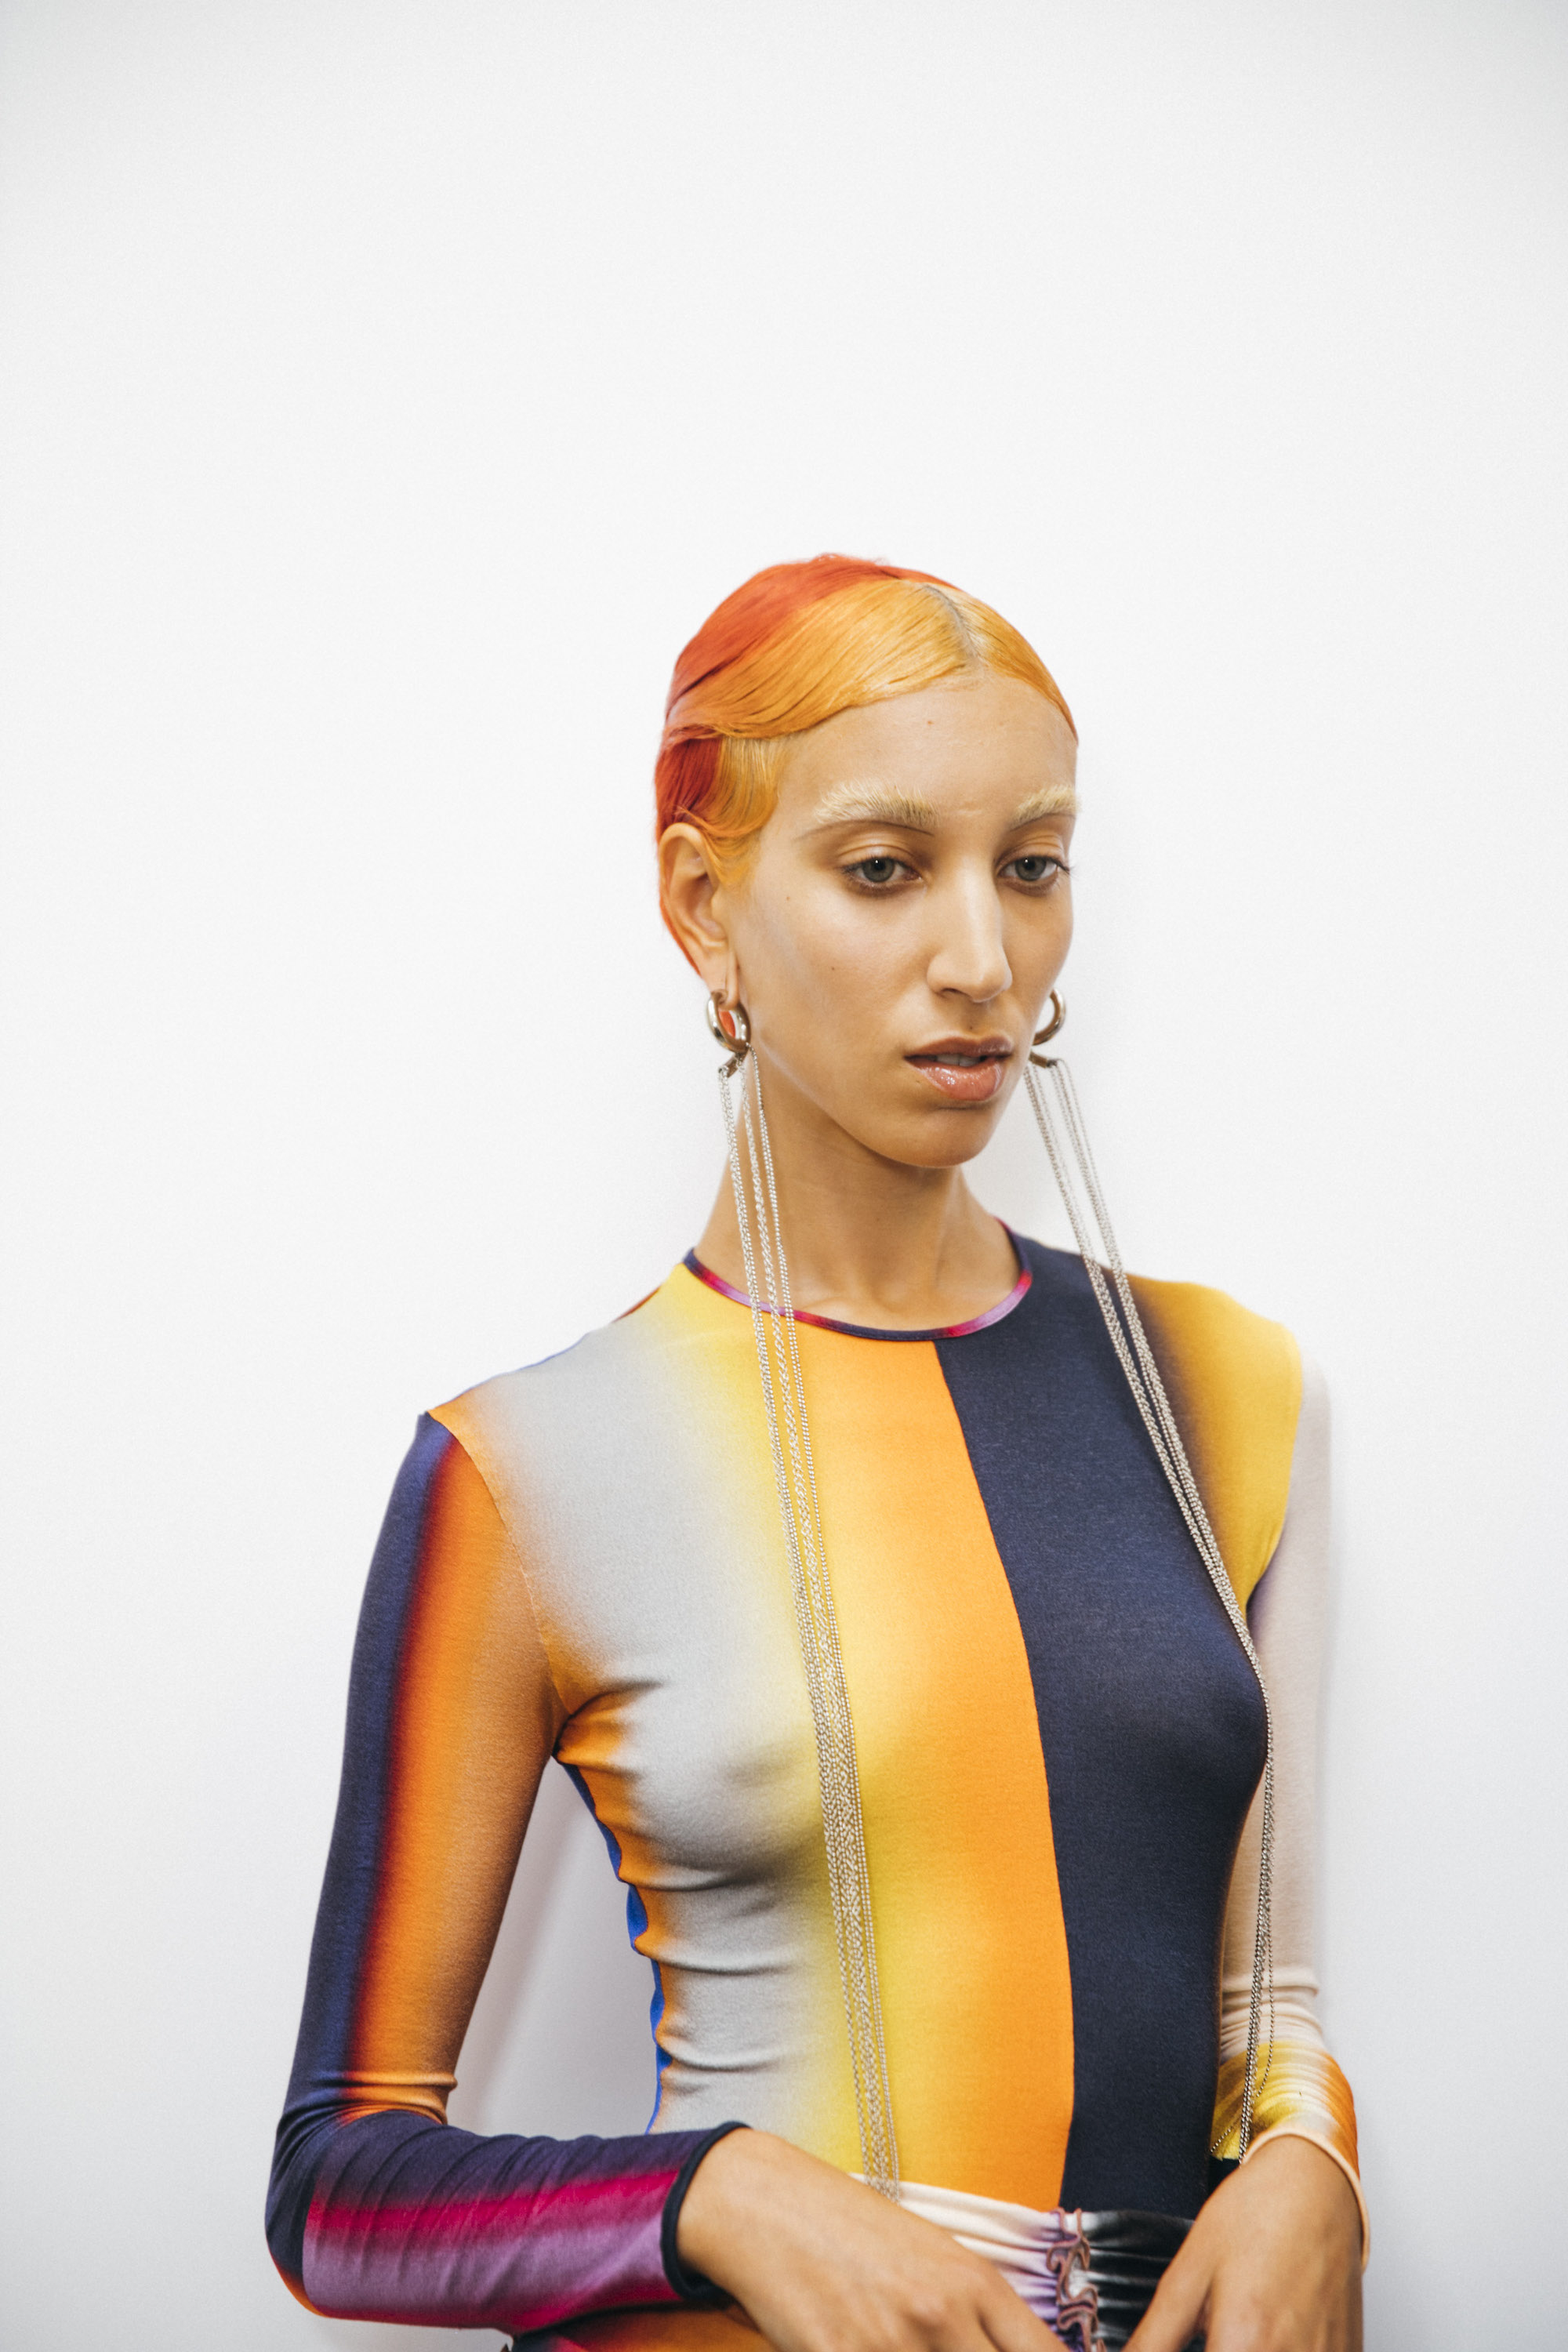 Mugler SS20 at Paris Fashion Week orange hair